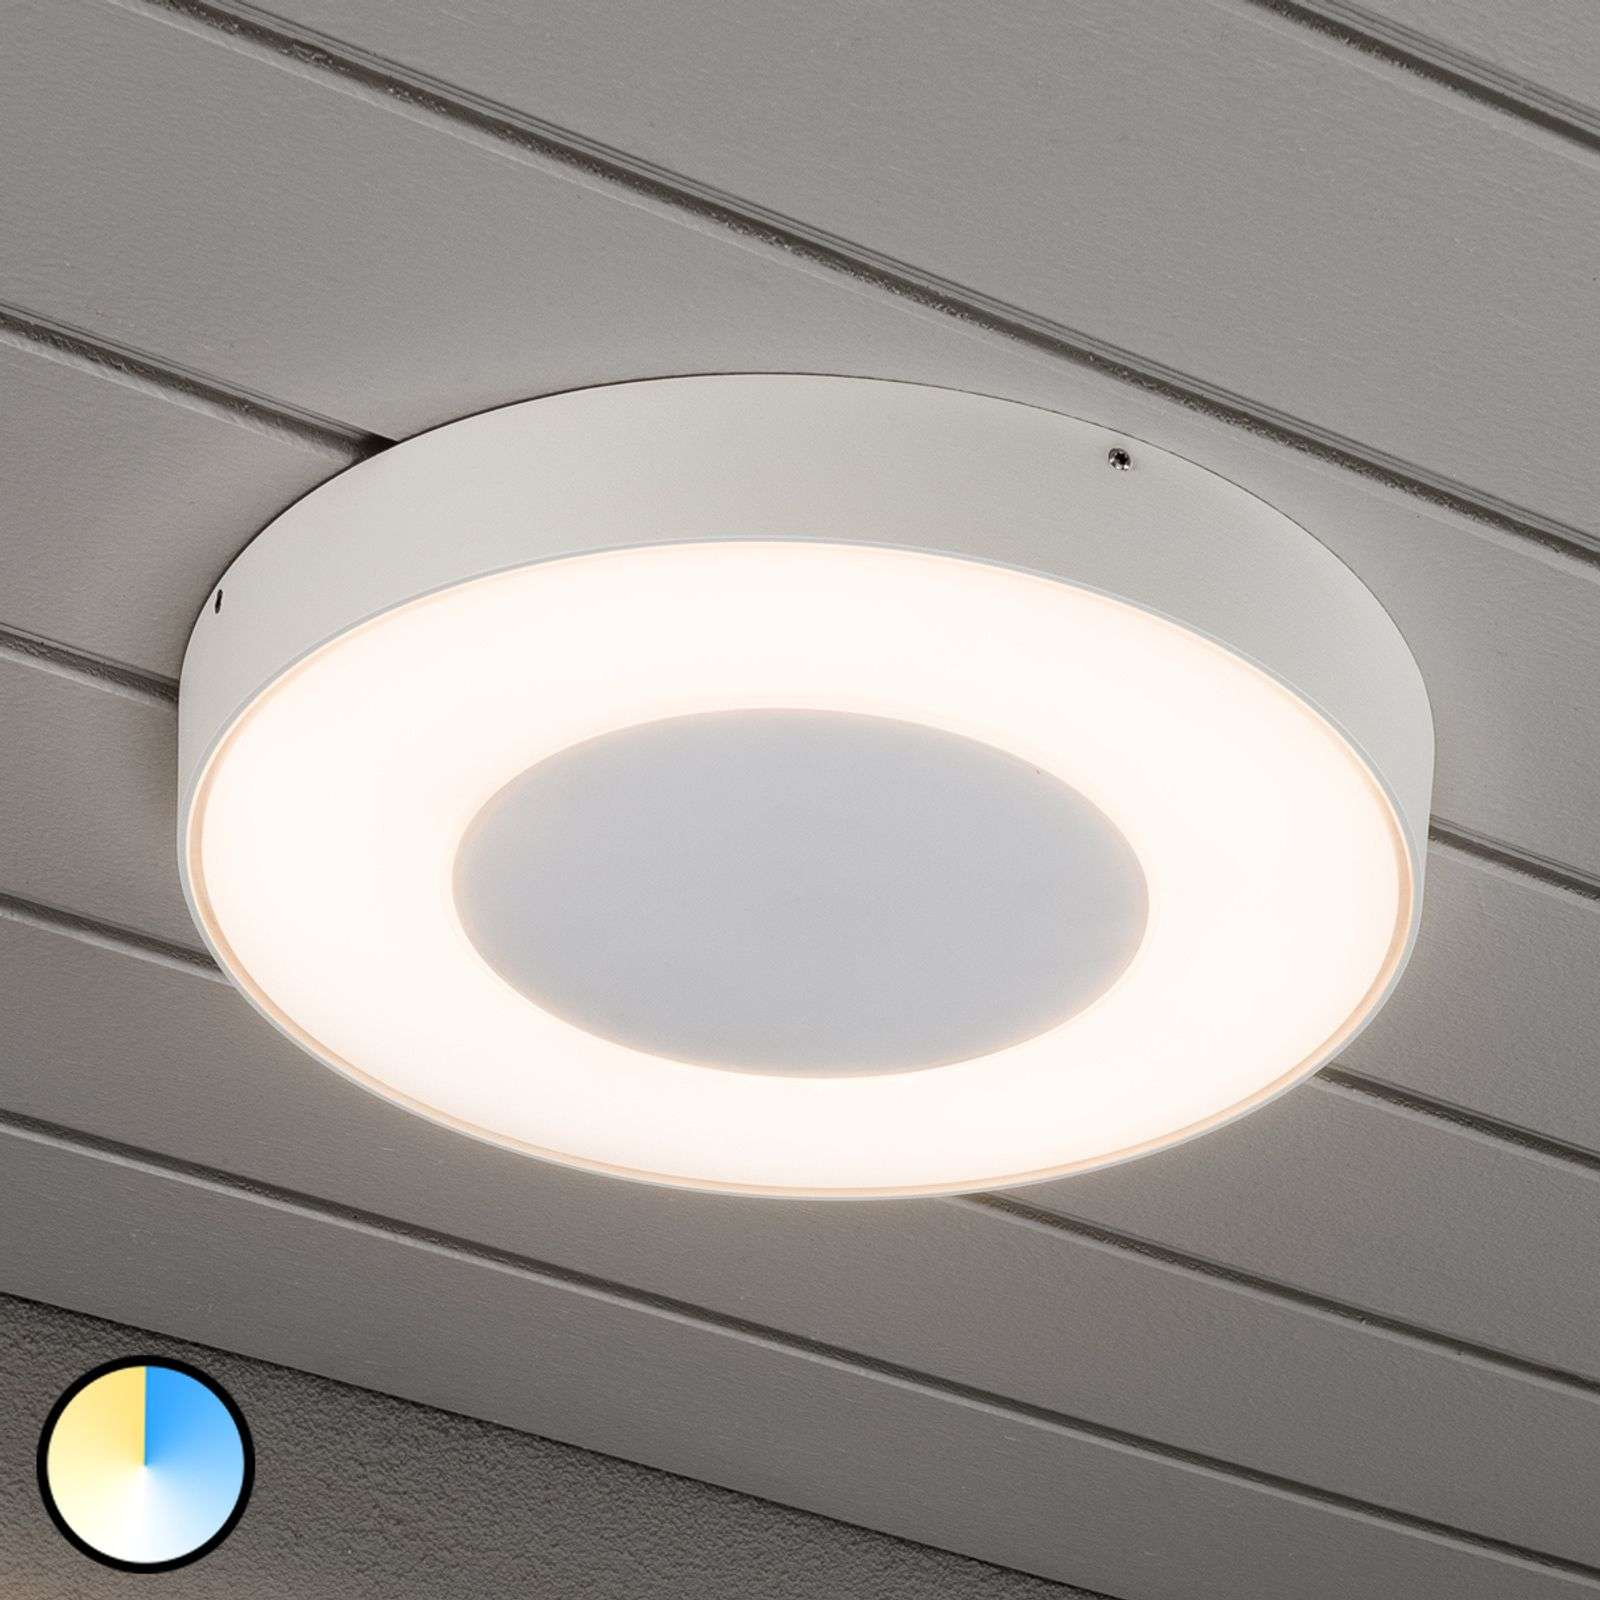 Ronde led buitenplafondlamp Carrara in wit